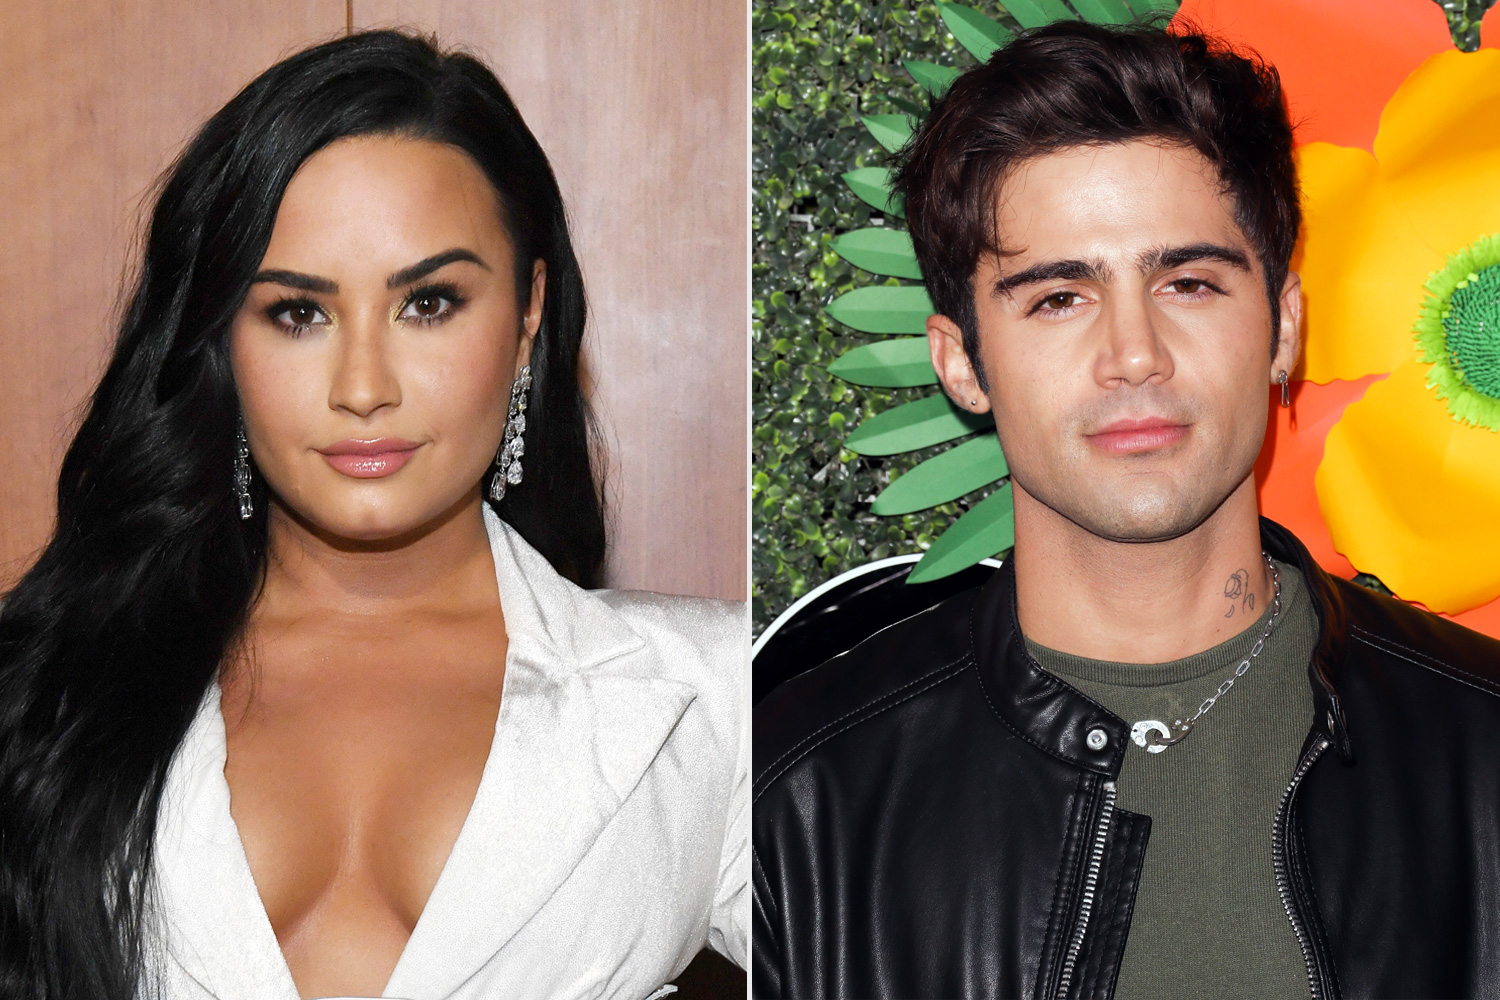 demi-lovato-and-max-ehrich-break-their-engagement-after-only-2-months